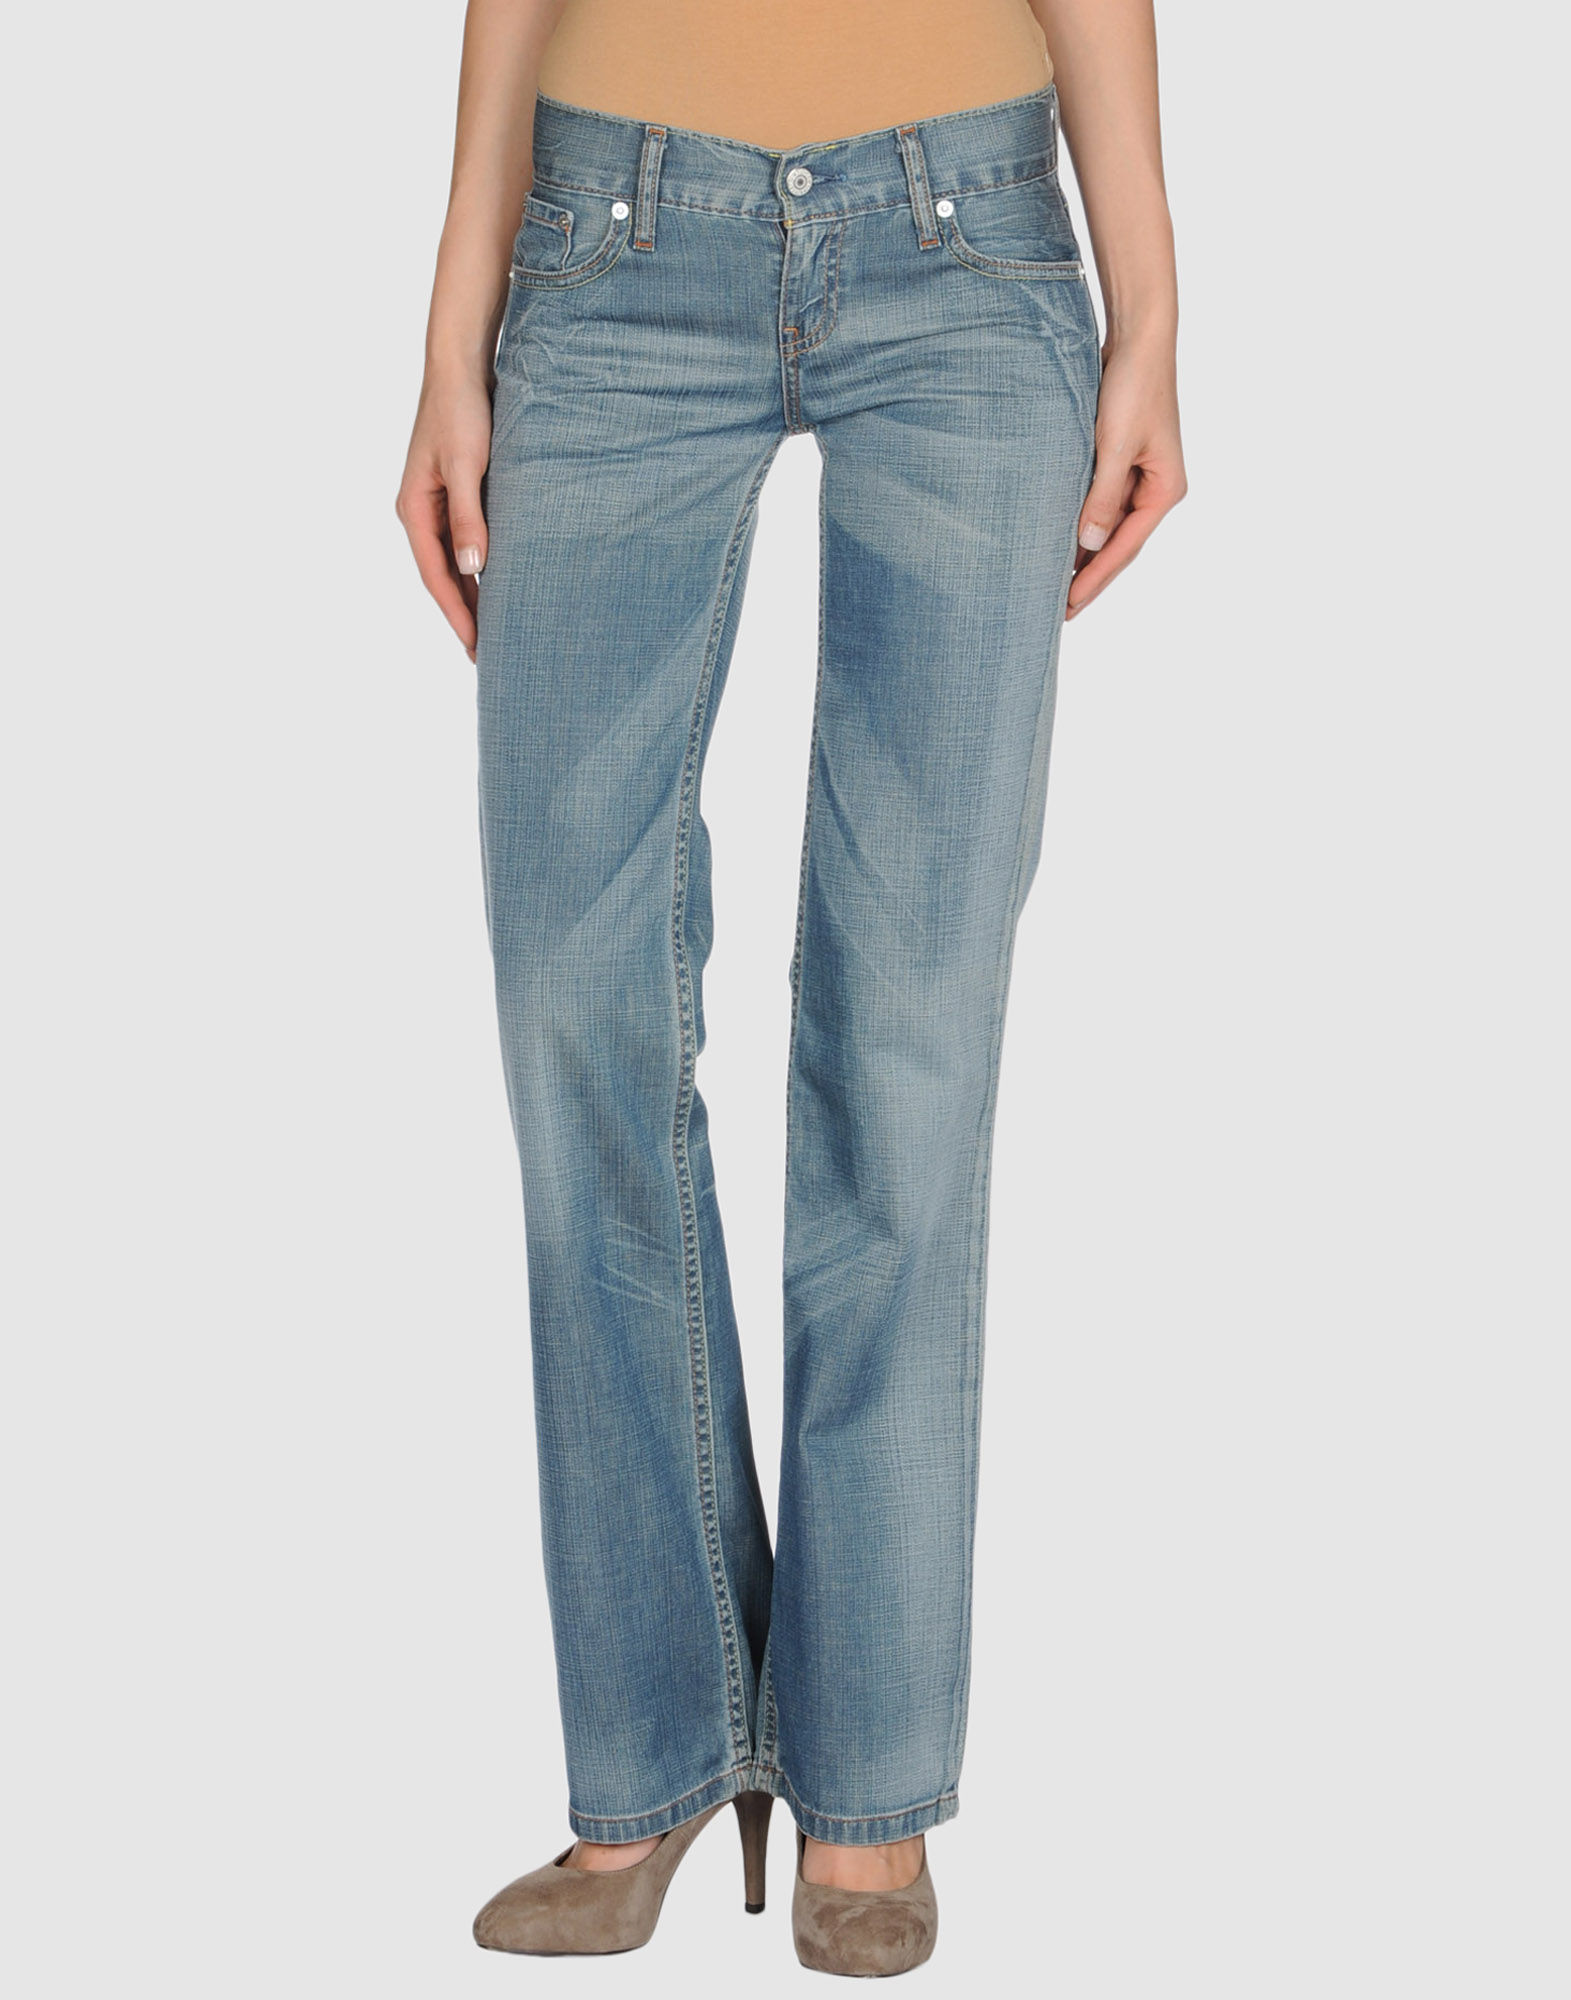 Levi's Red Tab Denim Pants   Women Levi's Red Tab Denim Pants   42219803RJ